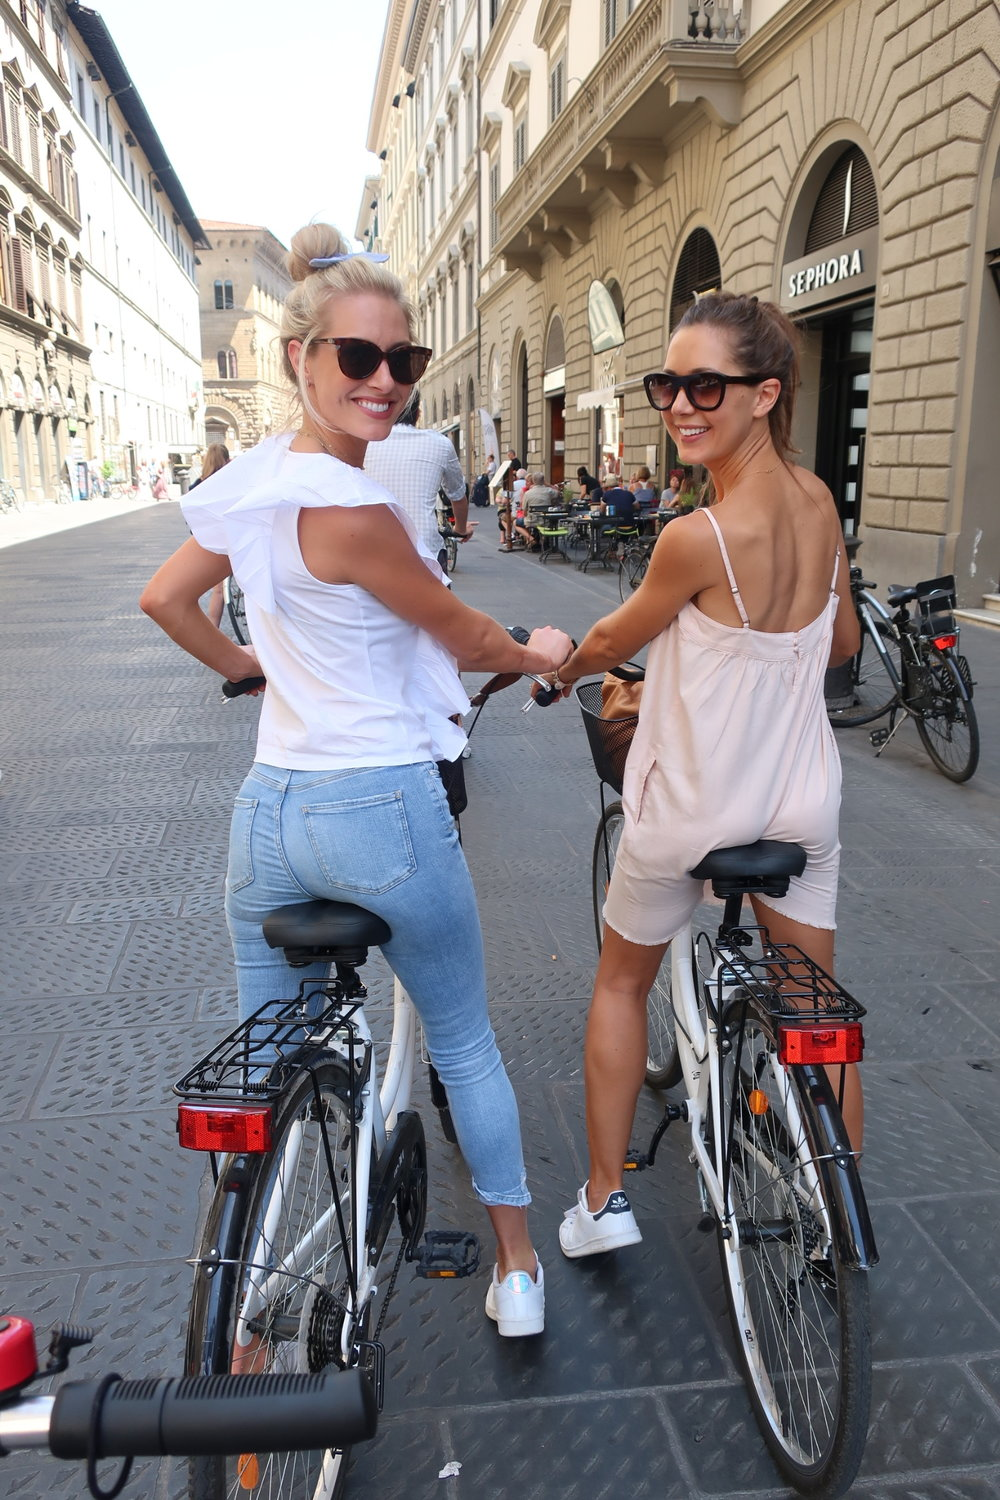 biking in florence